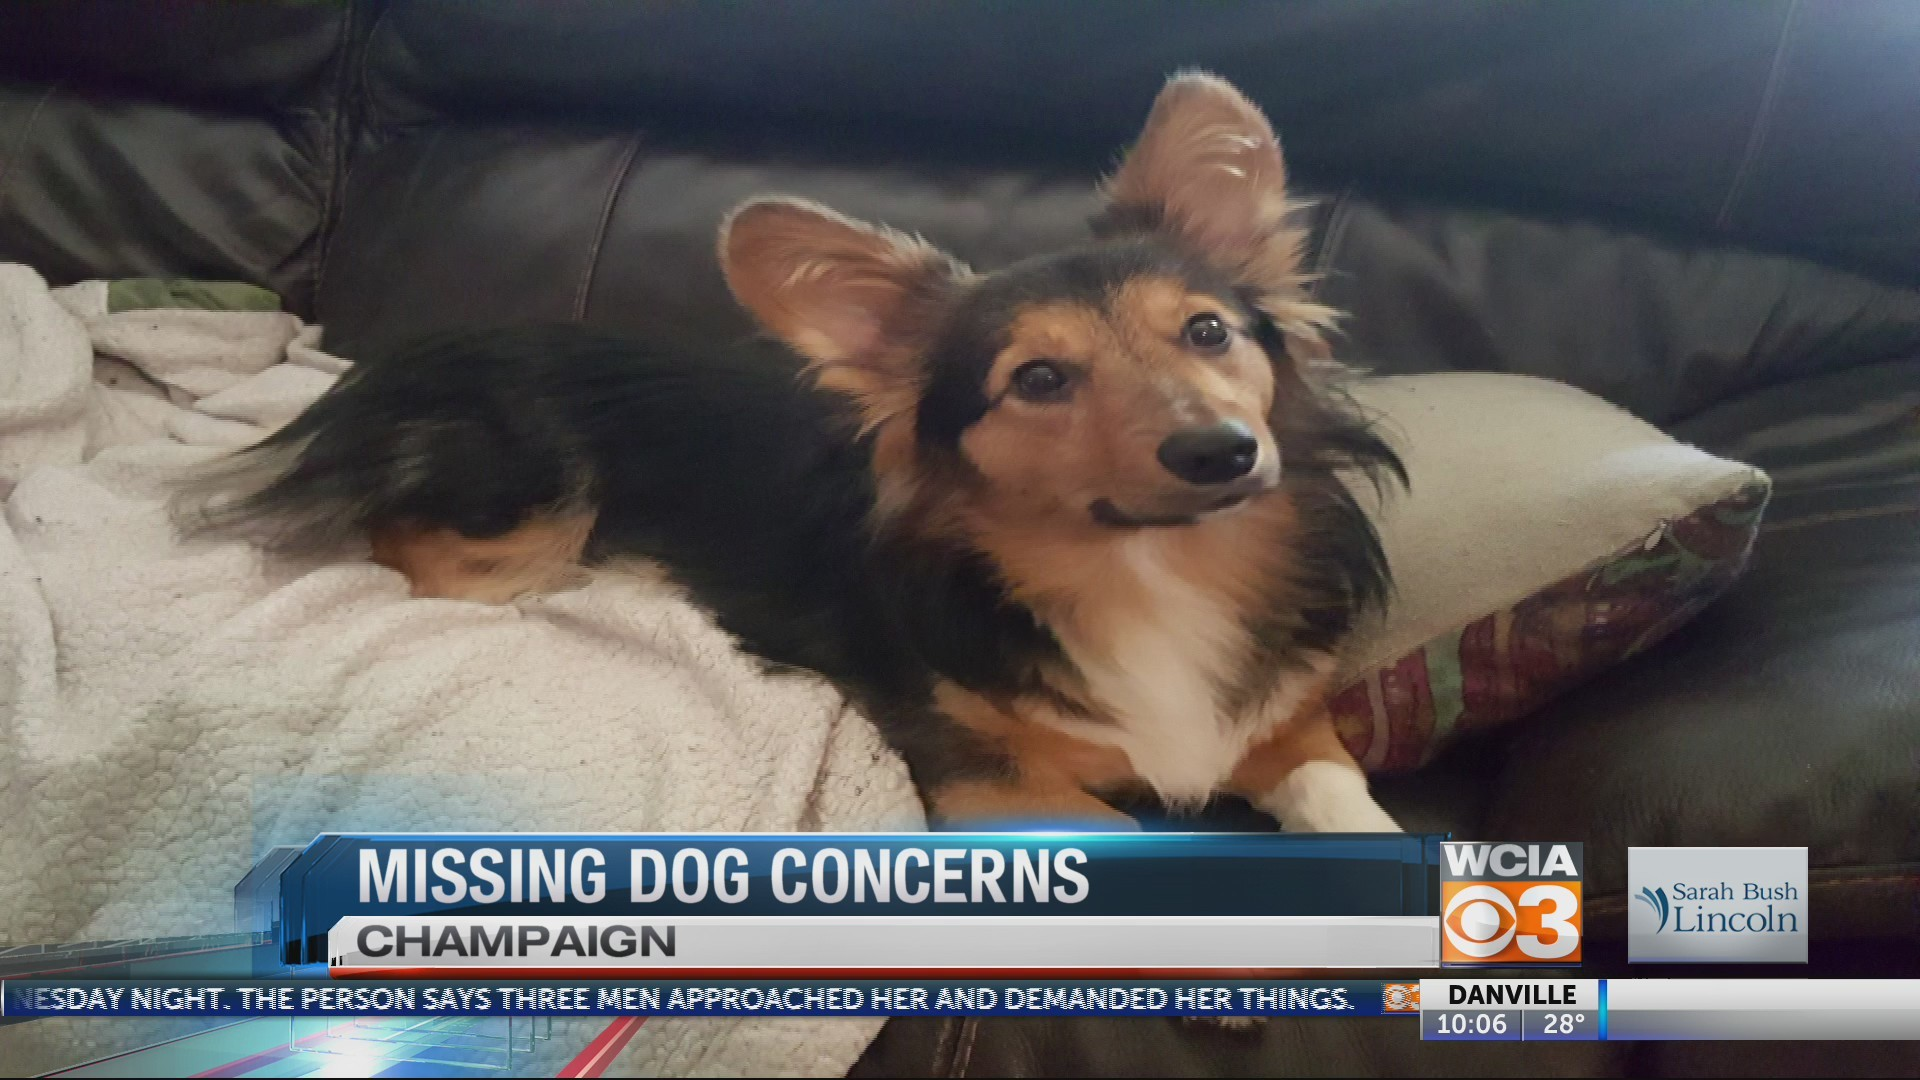 Missing dogs may not be coincidence